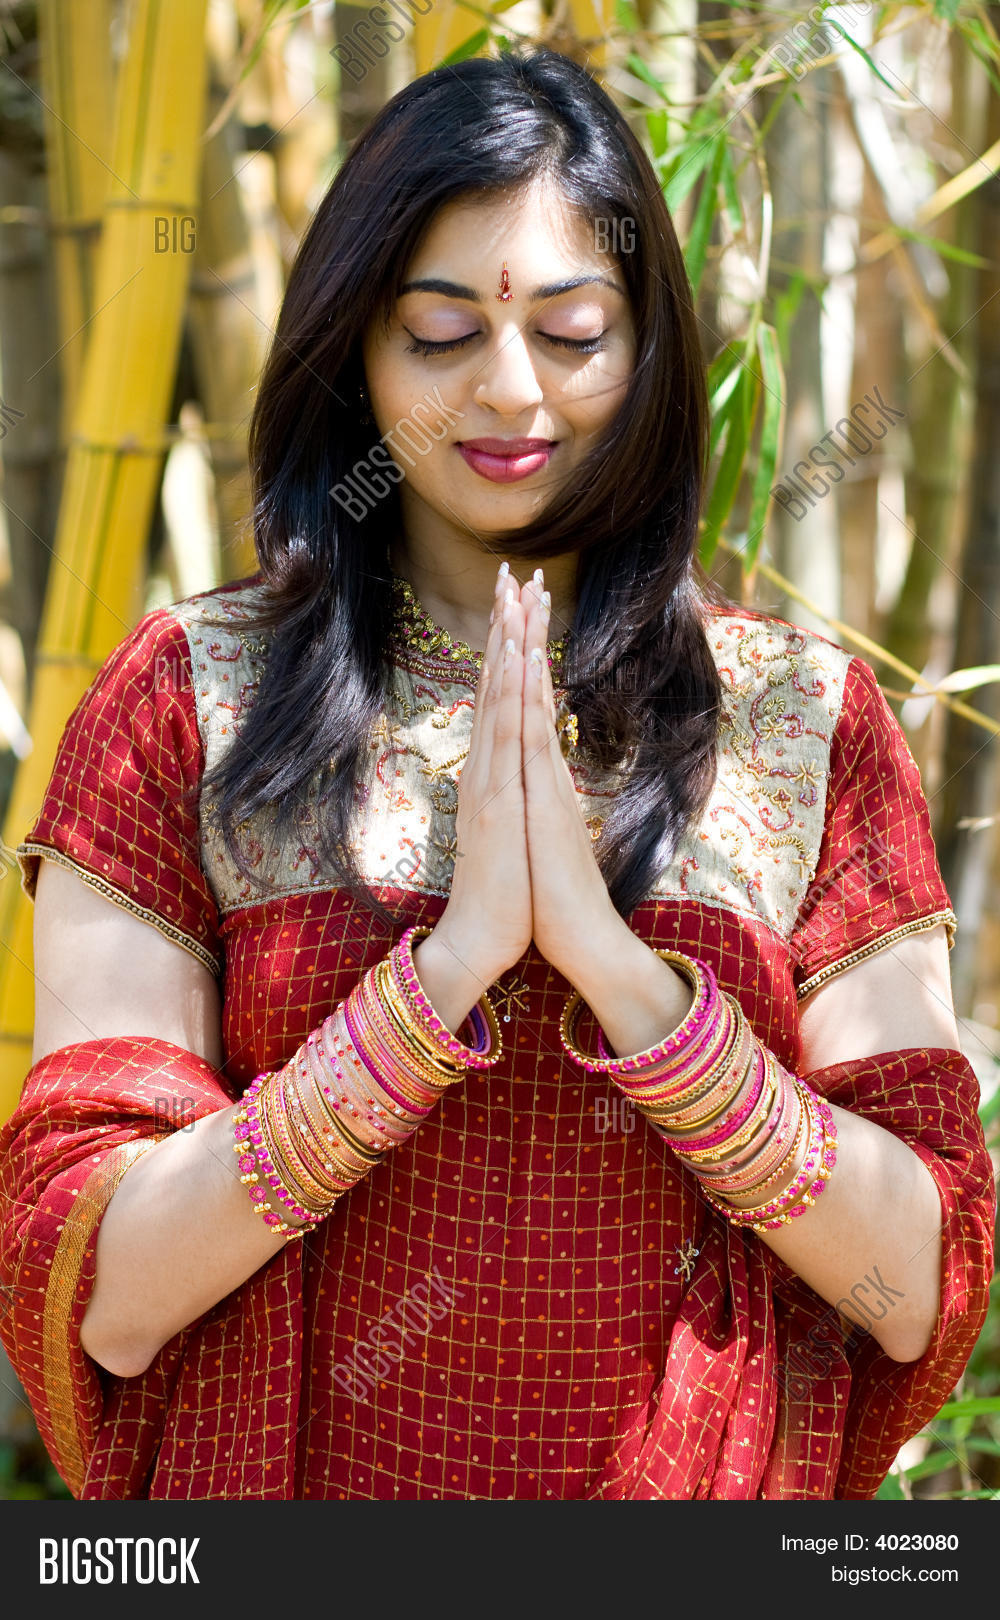 hindu single women in pageton Browse photo profiles & contact who are hindu, religion on australia's #1 dating site rsvp free to browse & join.